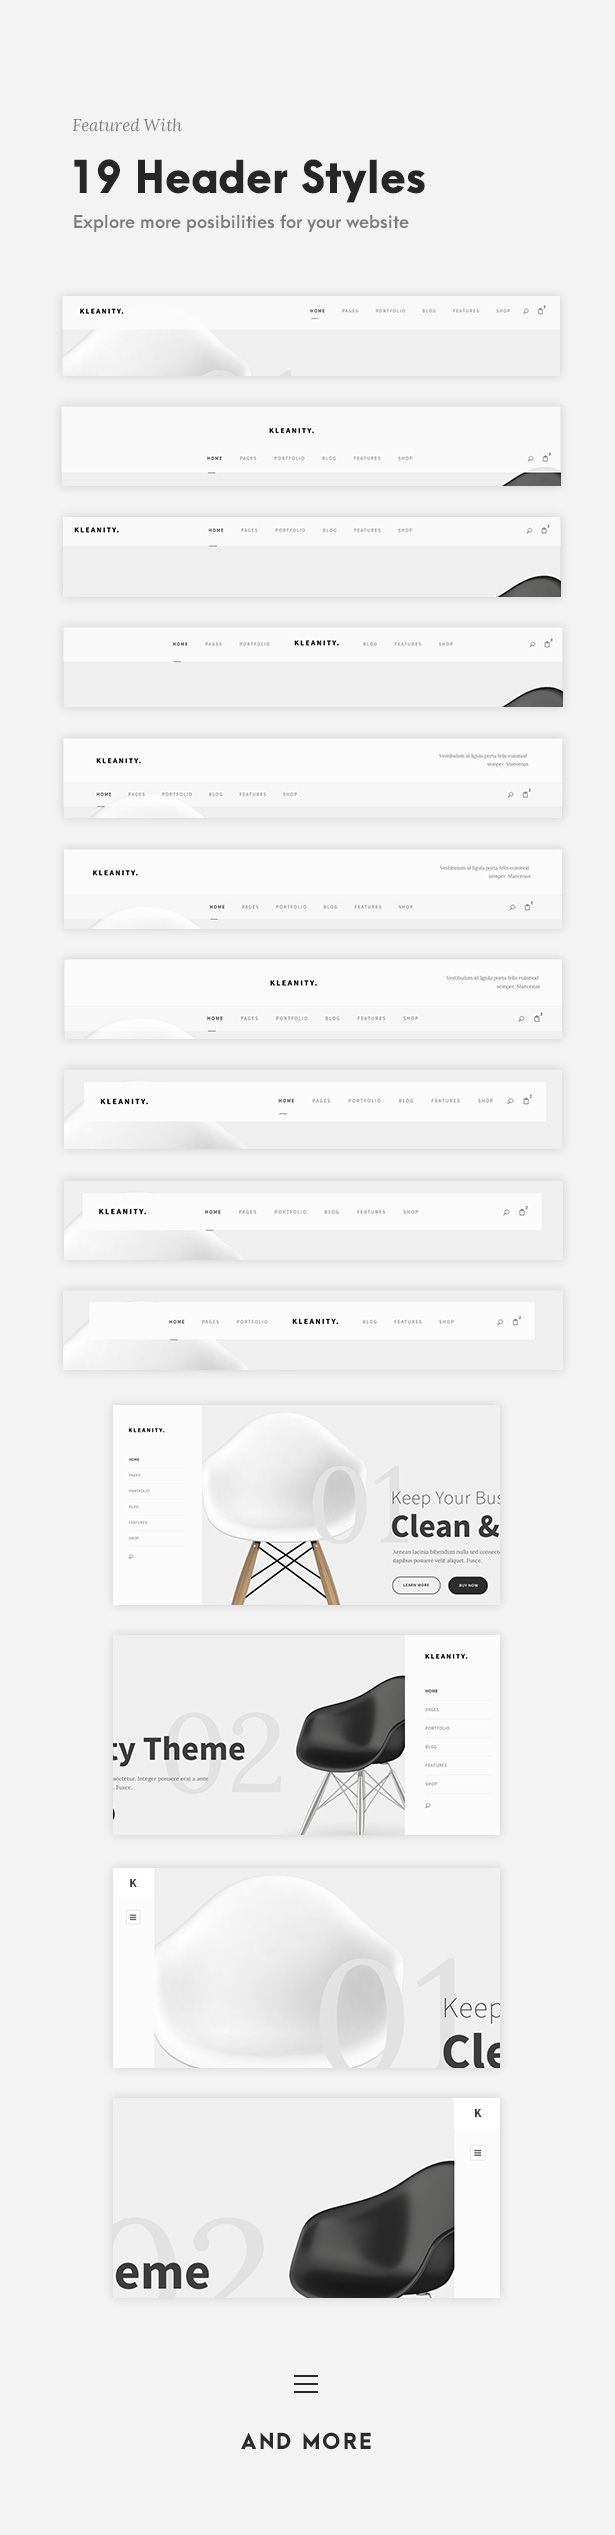 Kleanity - Minimalist WordPress Theme / Creative Portfolio #agency #artist #business • Download ➝ https://themeforest.net/item/kleanity-minimalist-wordpress-theme-creative-portfolio/19133384?ref=pxcr http://templates.jrstudioweb.com/